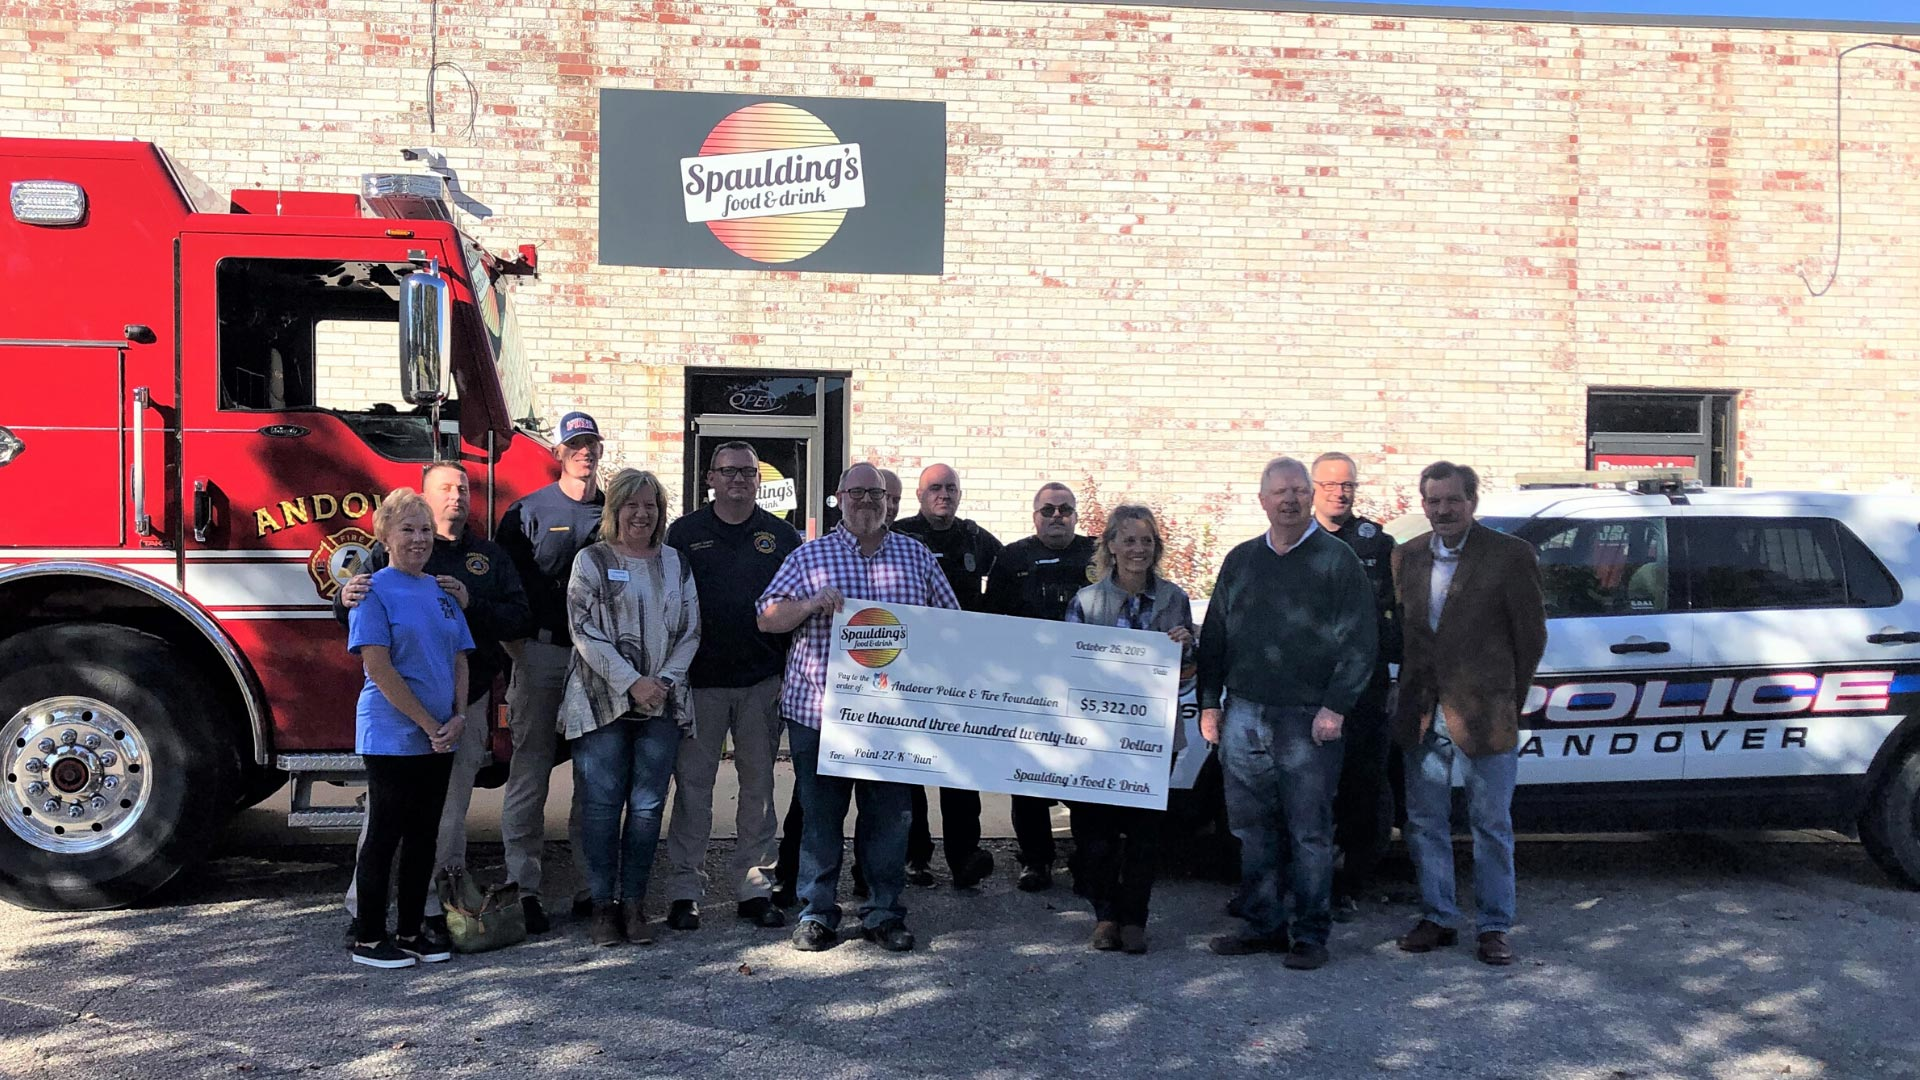 Andover Police & Fire Foundation receives check from Spauldings